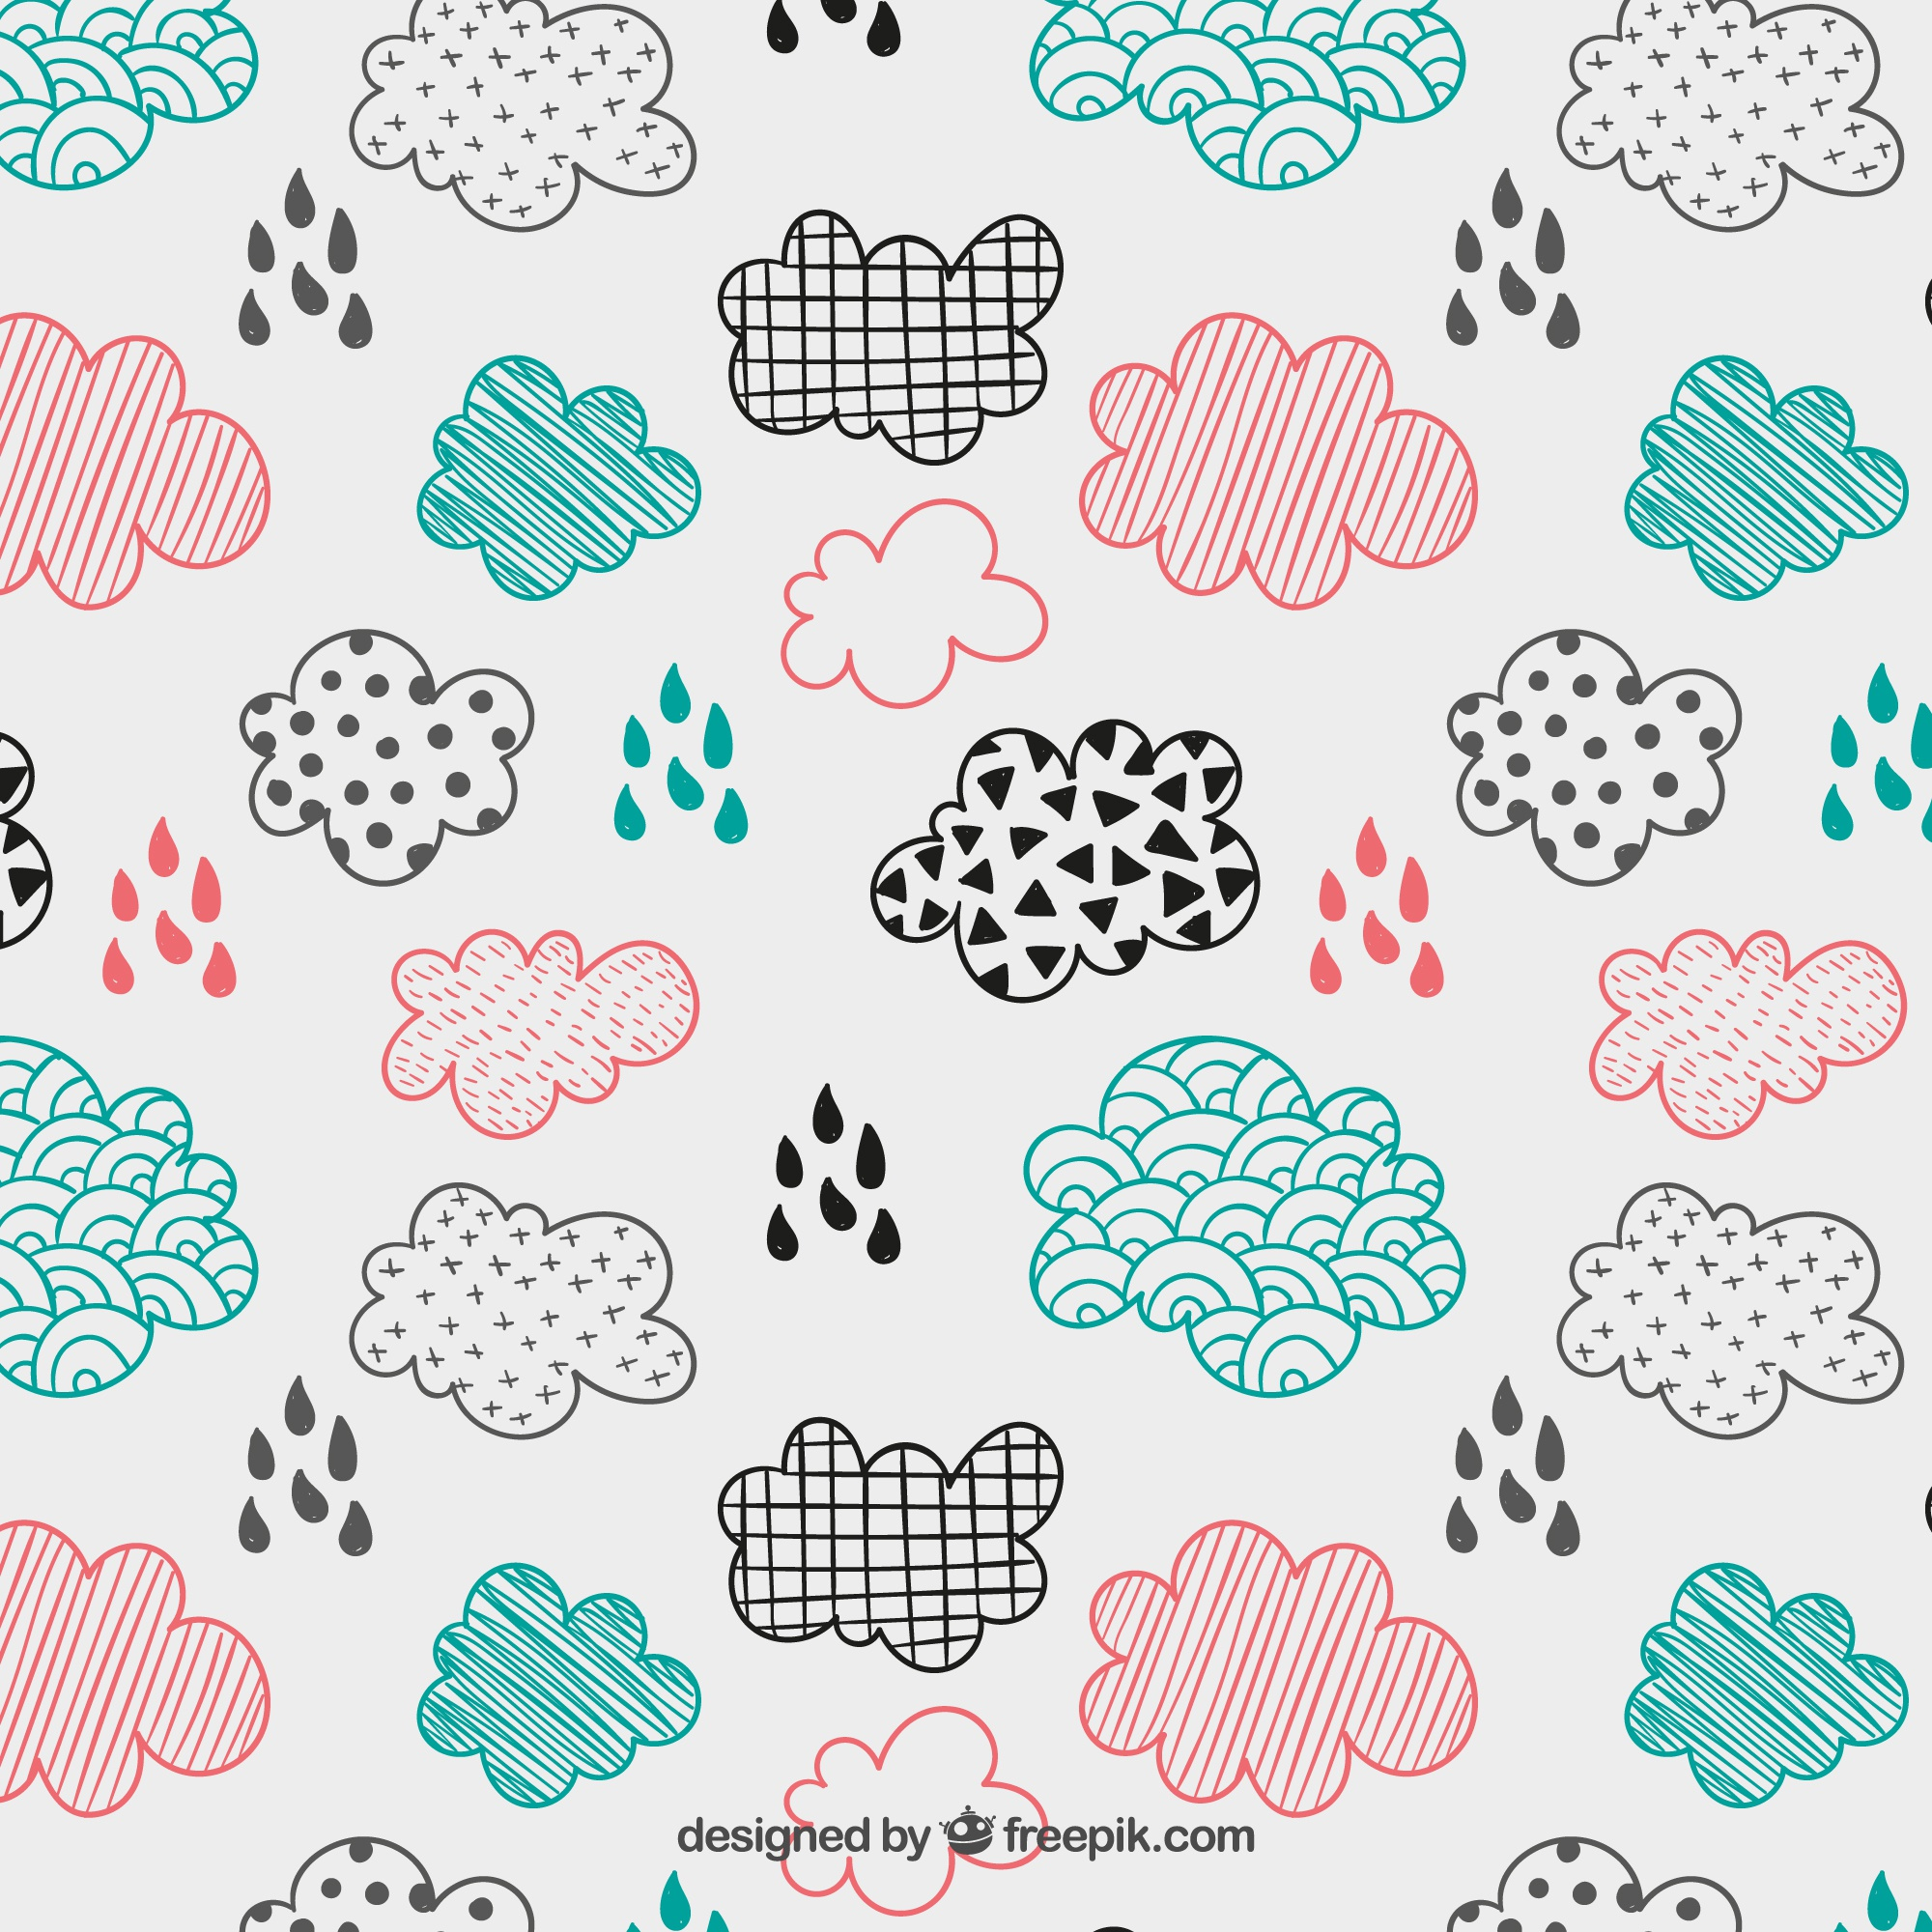 Sketchy clouds pattern